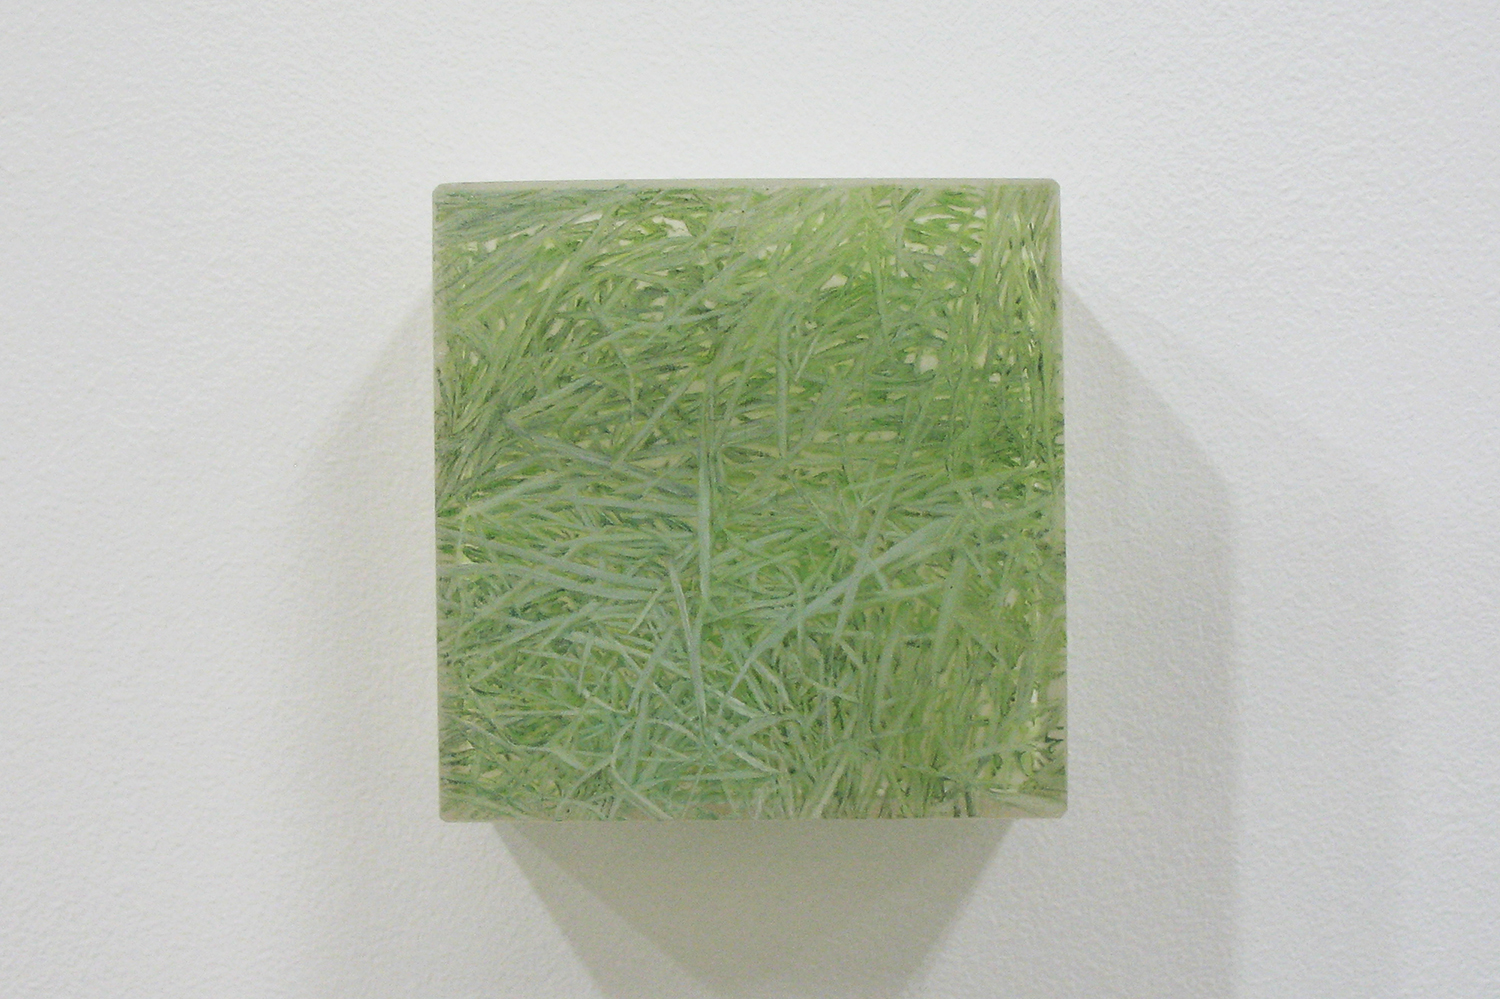 Photo-painting 草上のかおり-11|Scent on the grass-11 |7.5 x 7.5 x 3 cm|Oil on FRP, mixed media| 2009